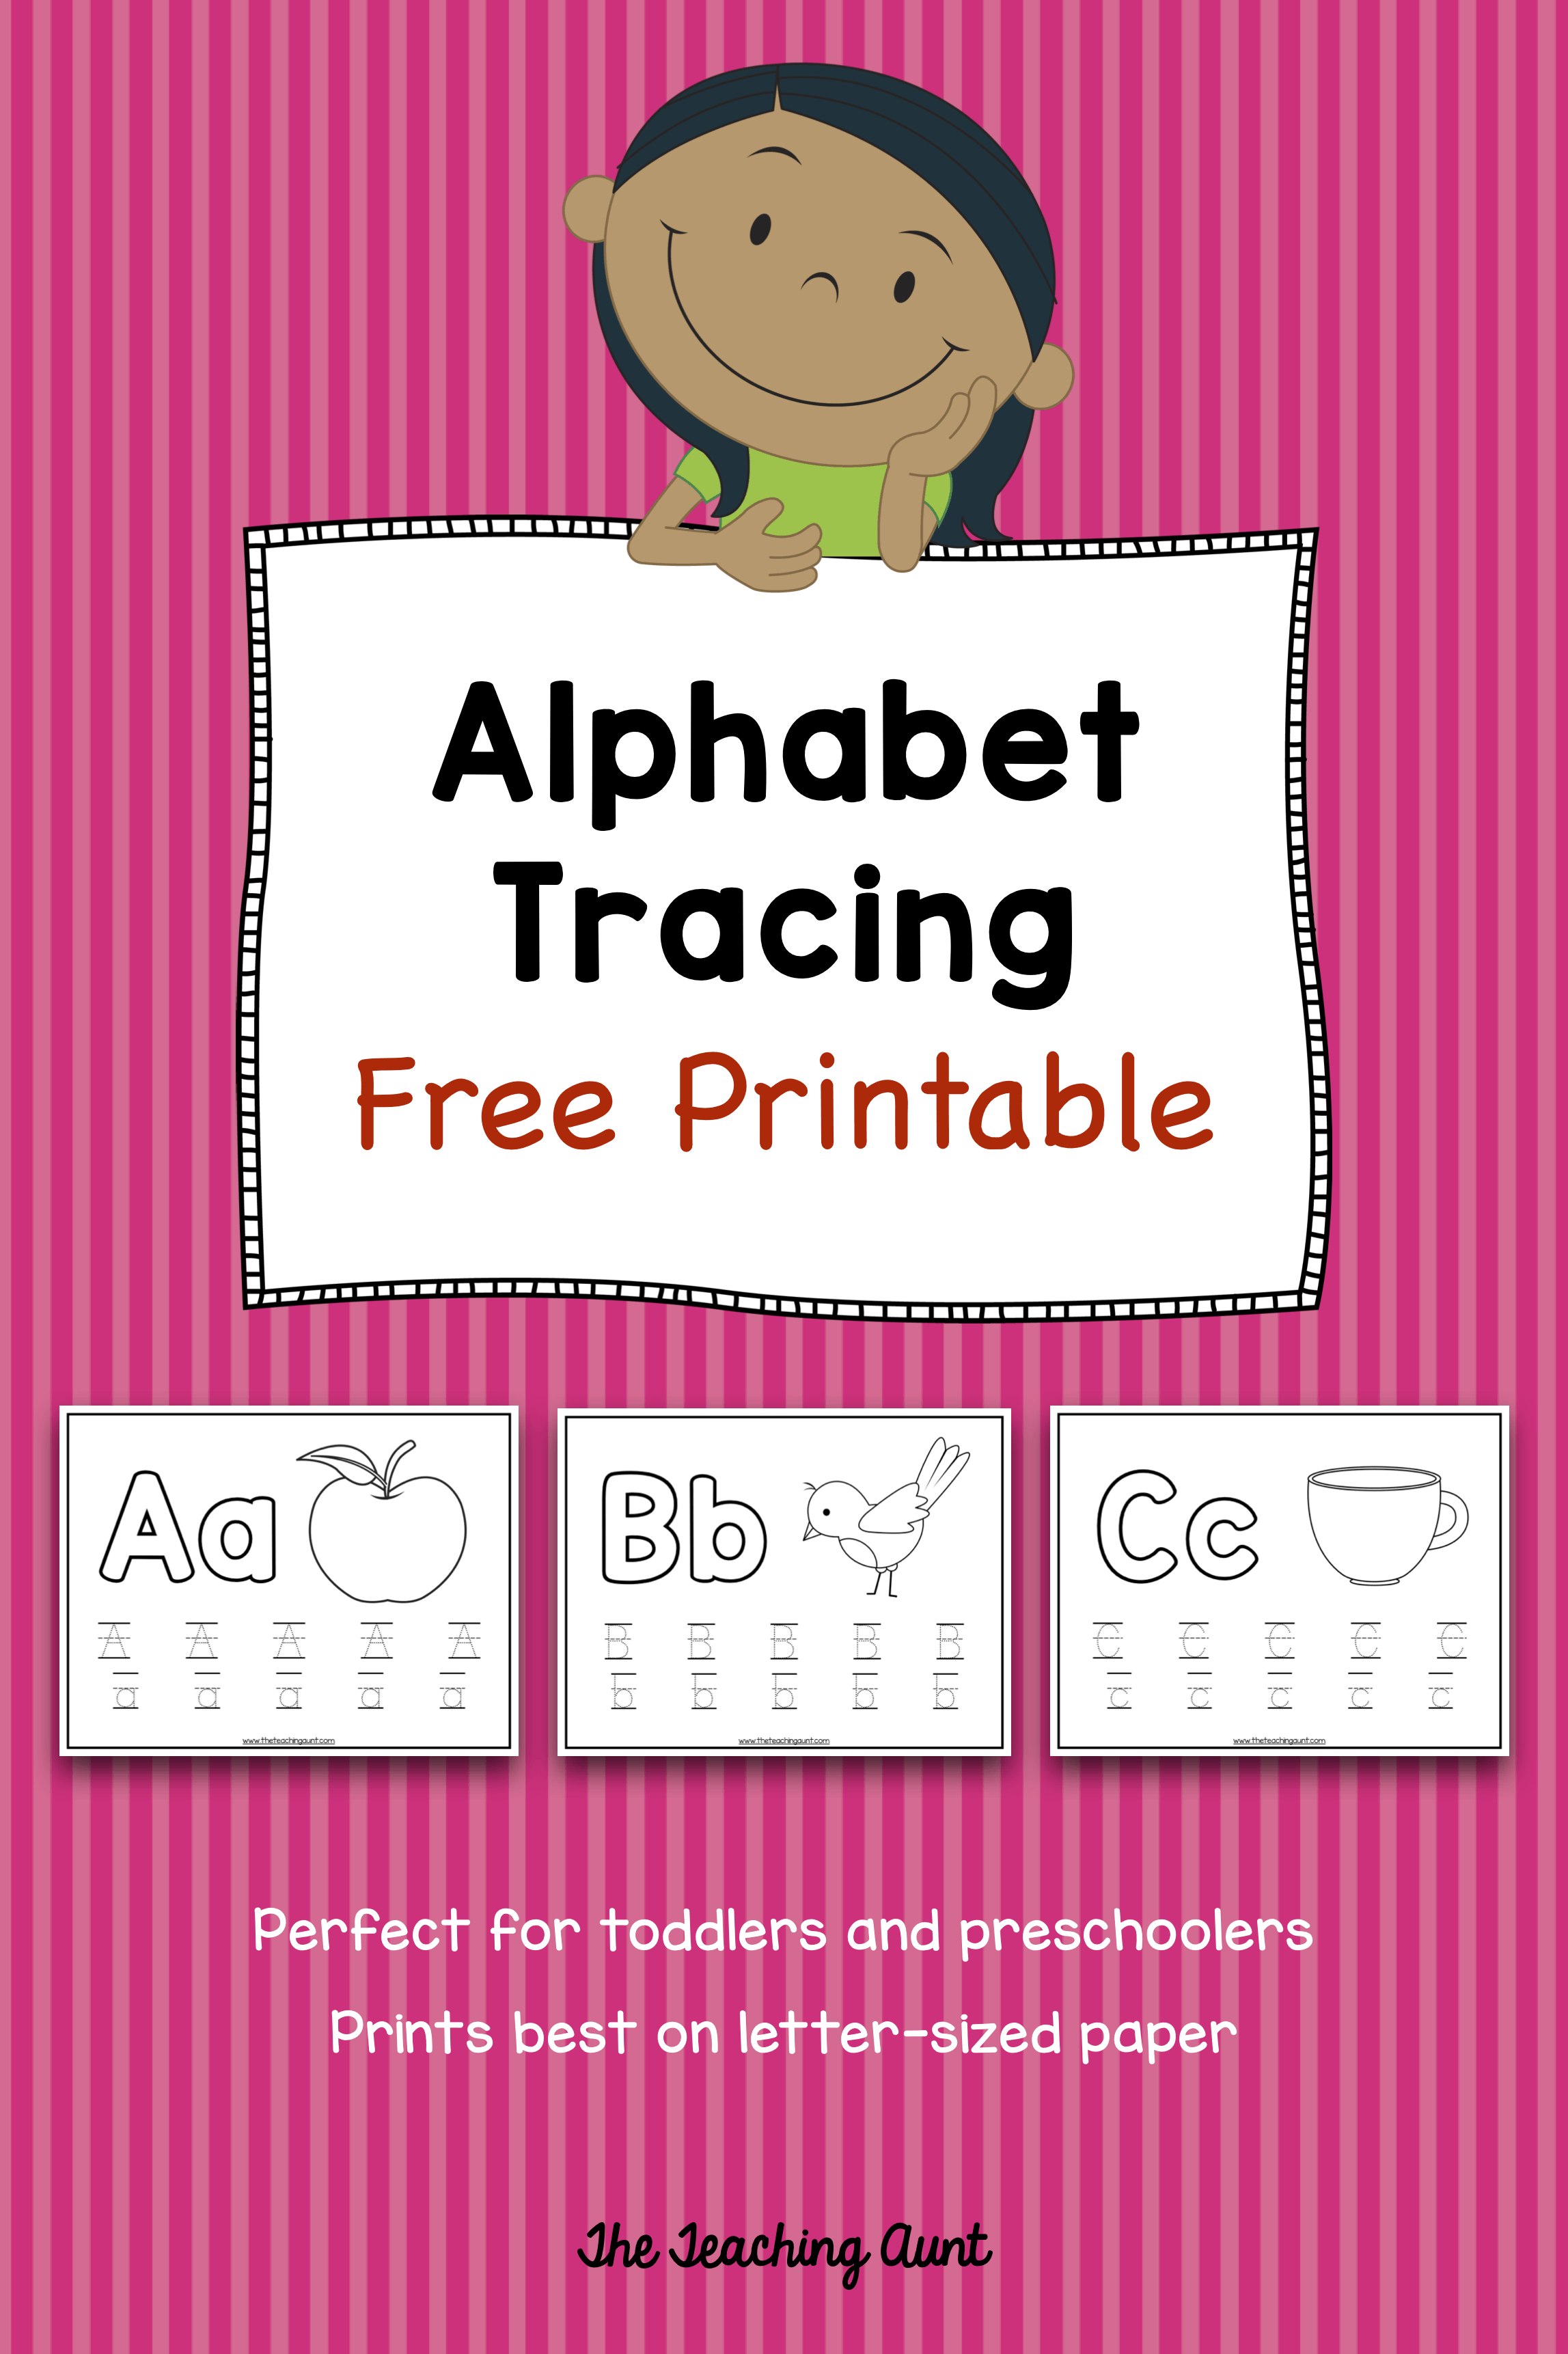 Alphabet Tracing Free Printable - The Teaching Aunt